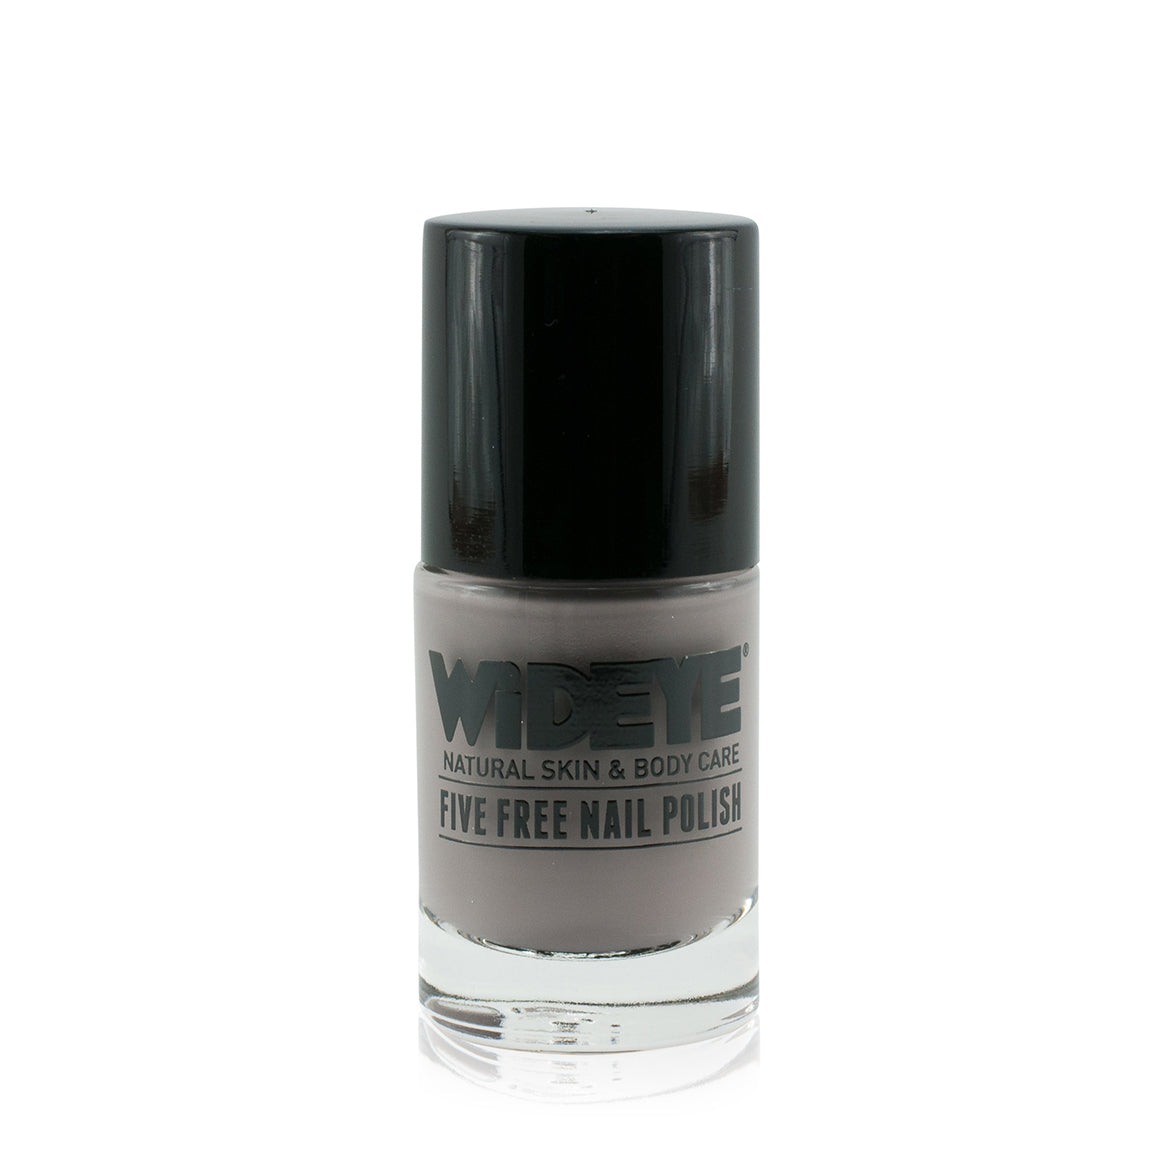 Mink grey nail varnish in glass bottle by WiDEYE.